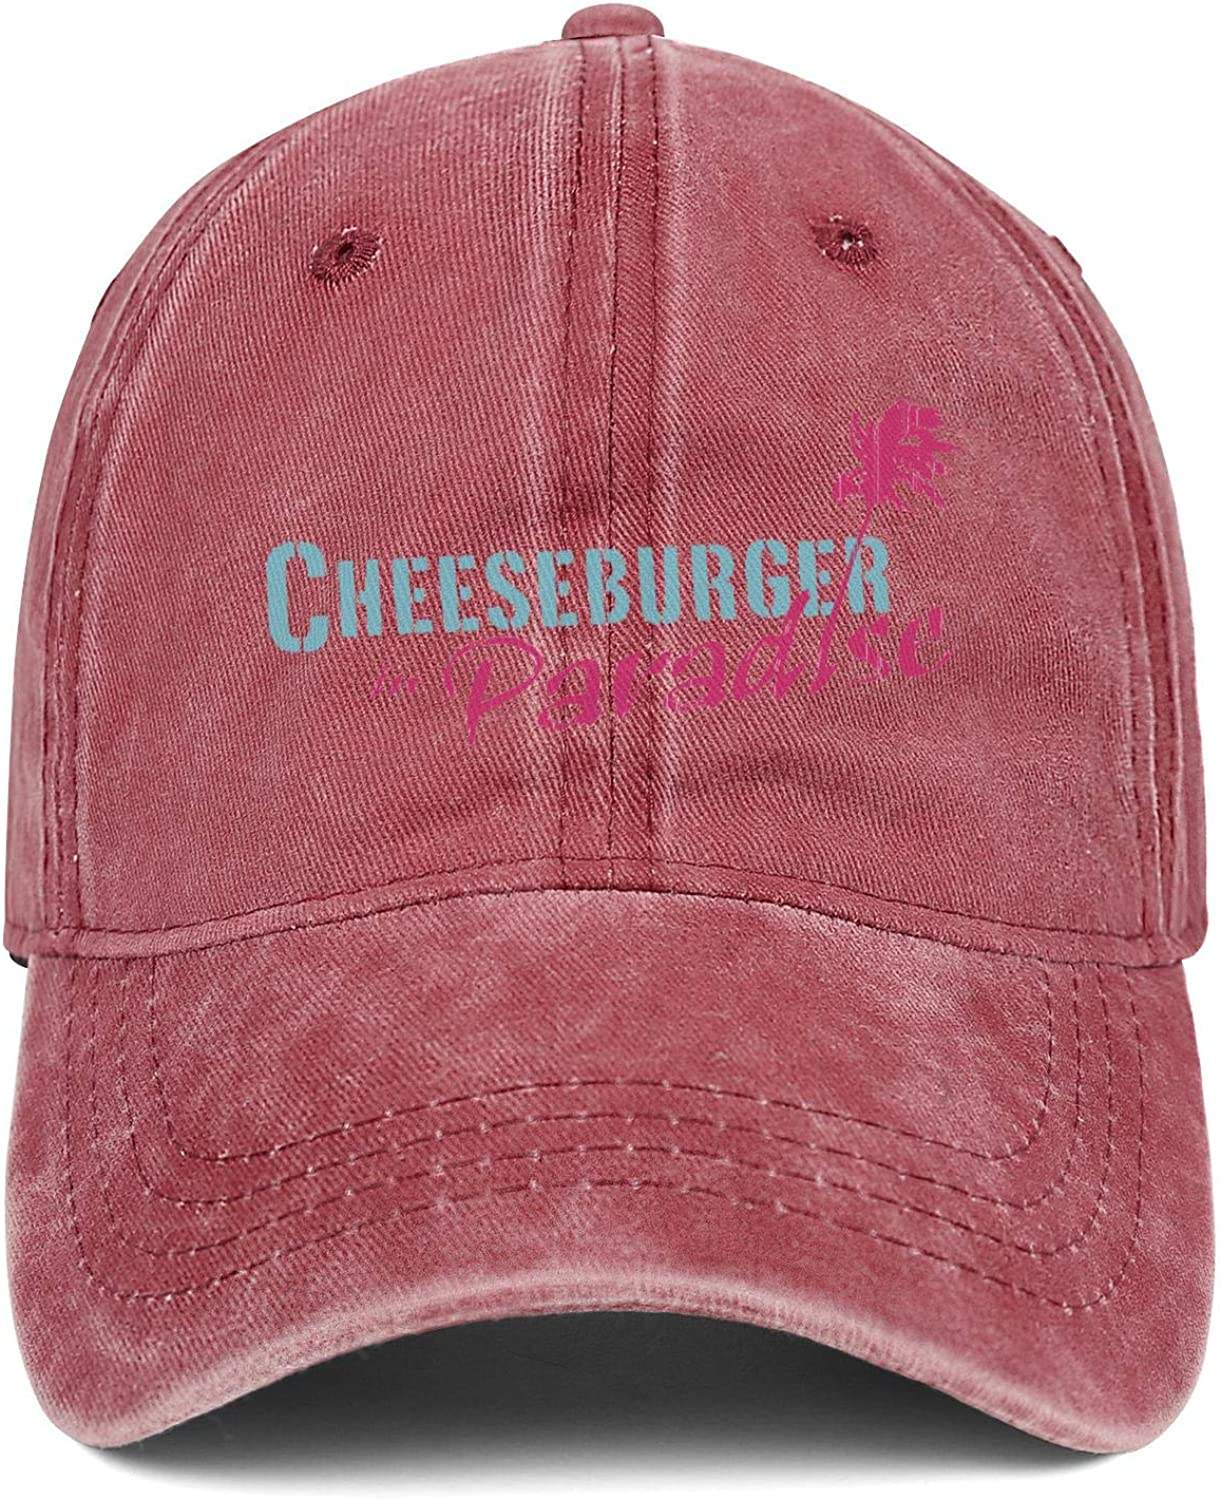 Wudo Unisex Cheeseburger in Paradise Hat Pretty Trucker Hat Baseball Cap Adjustable Cowboy Hat